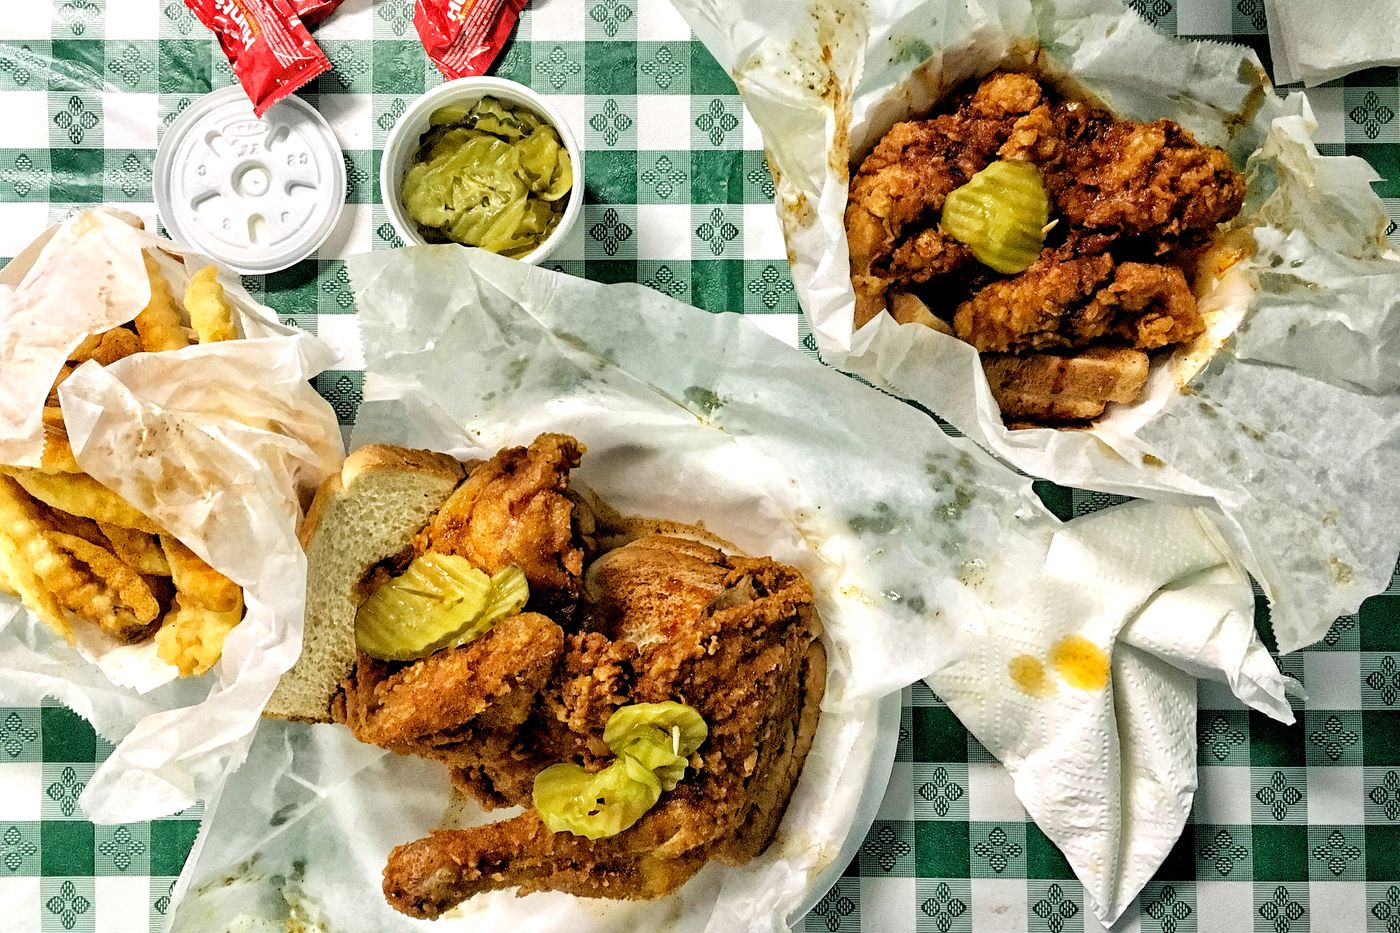 The South's 38 Essential Restaurants - Eater